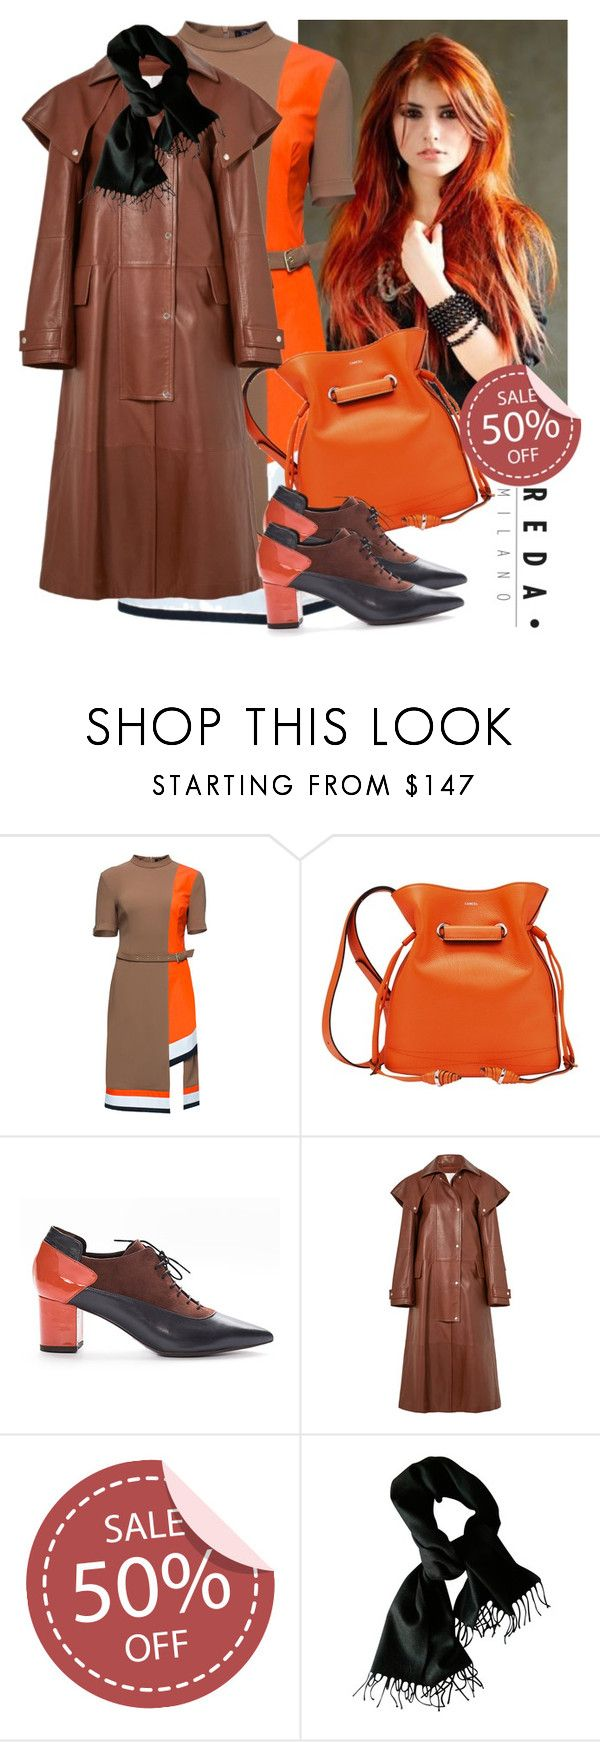 """Reda Milano Fashionable Woman's Shoes"" by irinavsl ❤ liked on Polyvore featuring Lattori, Lancel, Calvin Klein 205W39NYC and Prada"